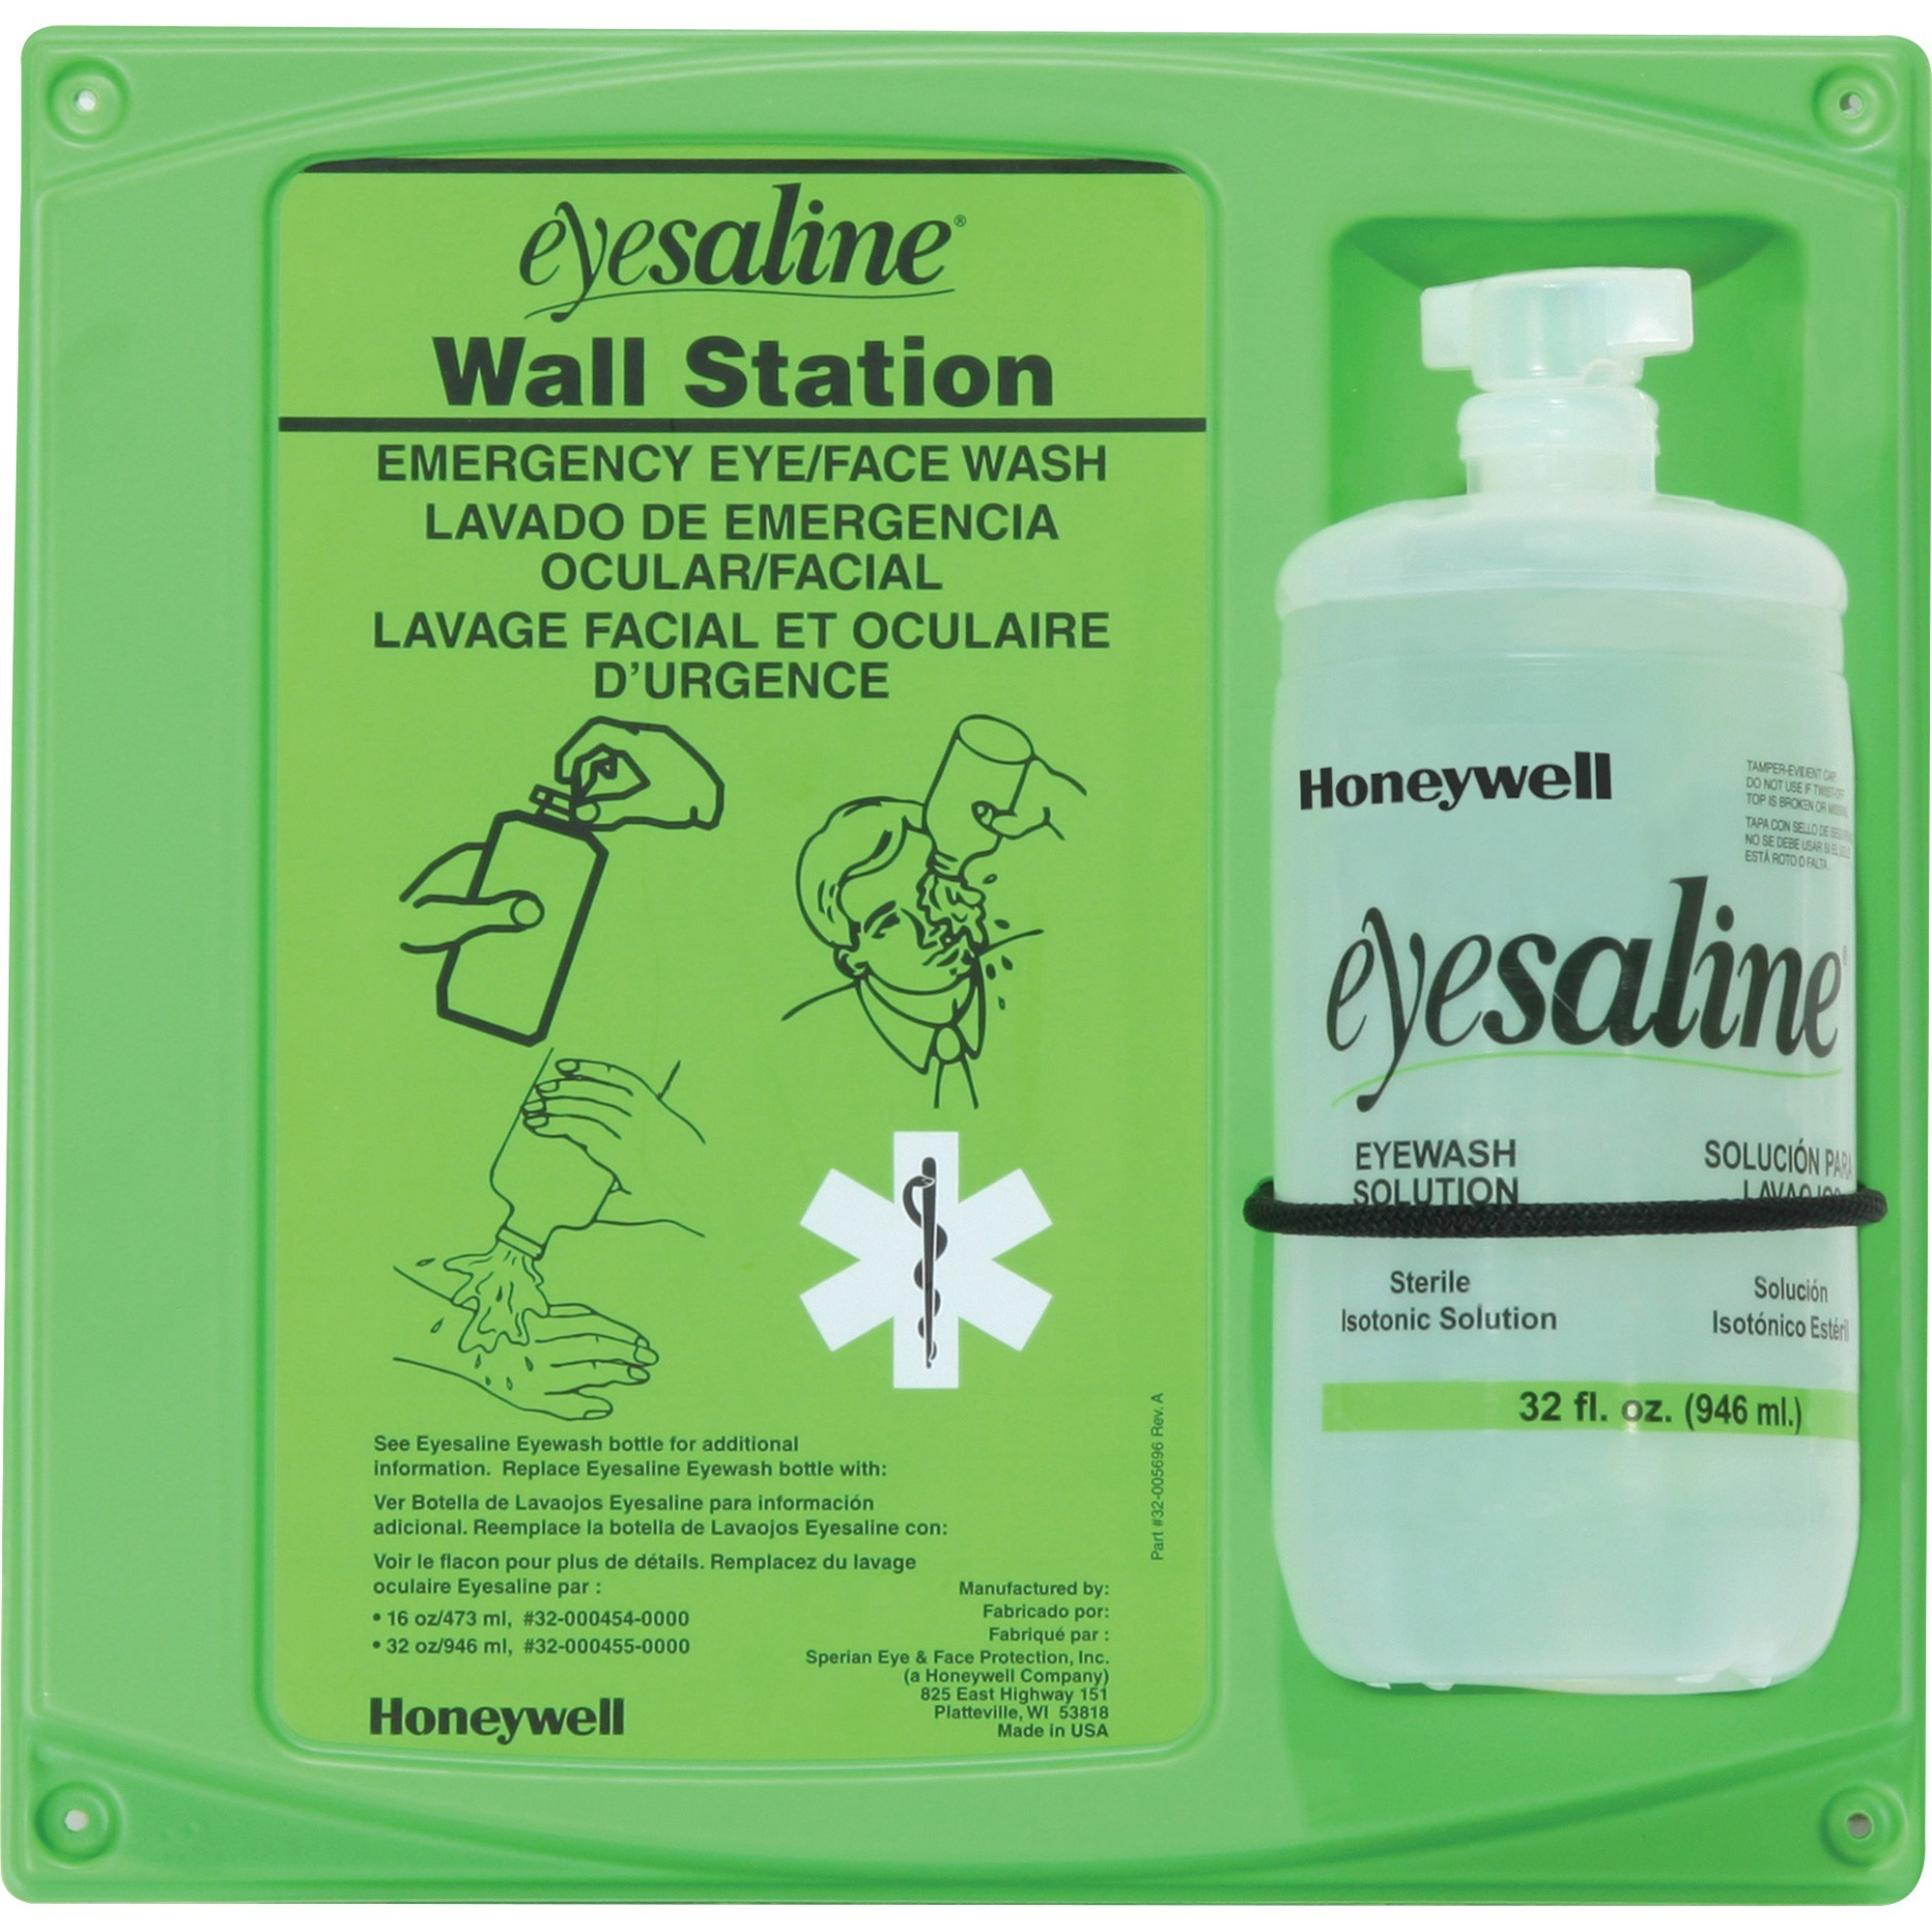 Honeywell, FND320004610, Fendall aline Eyewash Station, 1 Each, Green,Clear, 2 lb